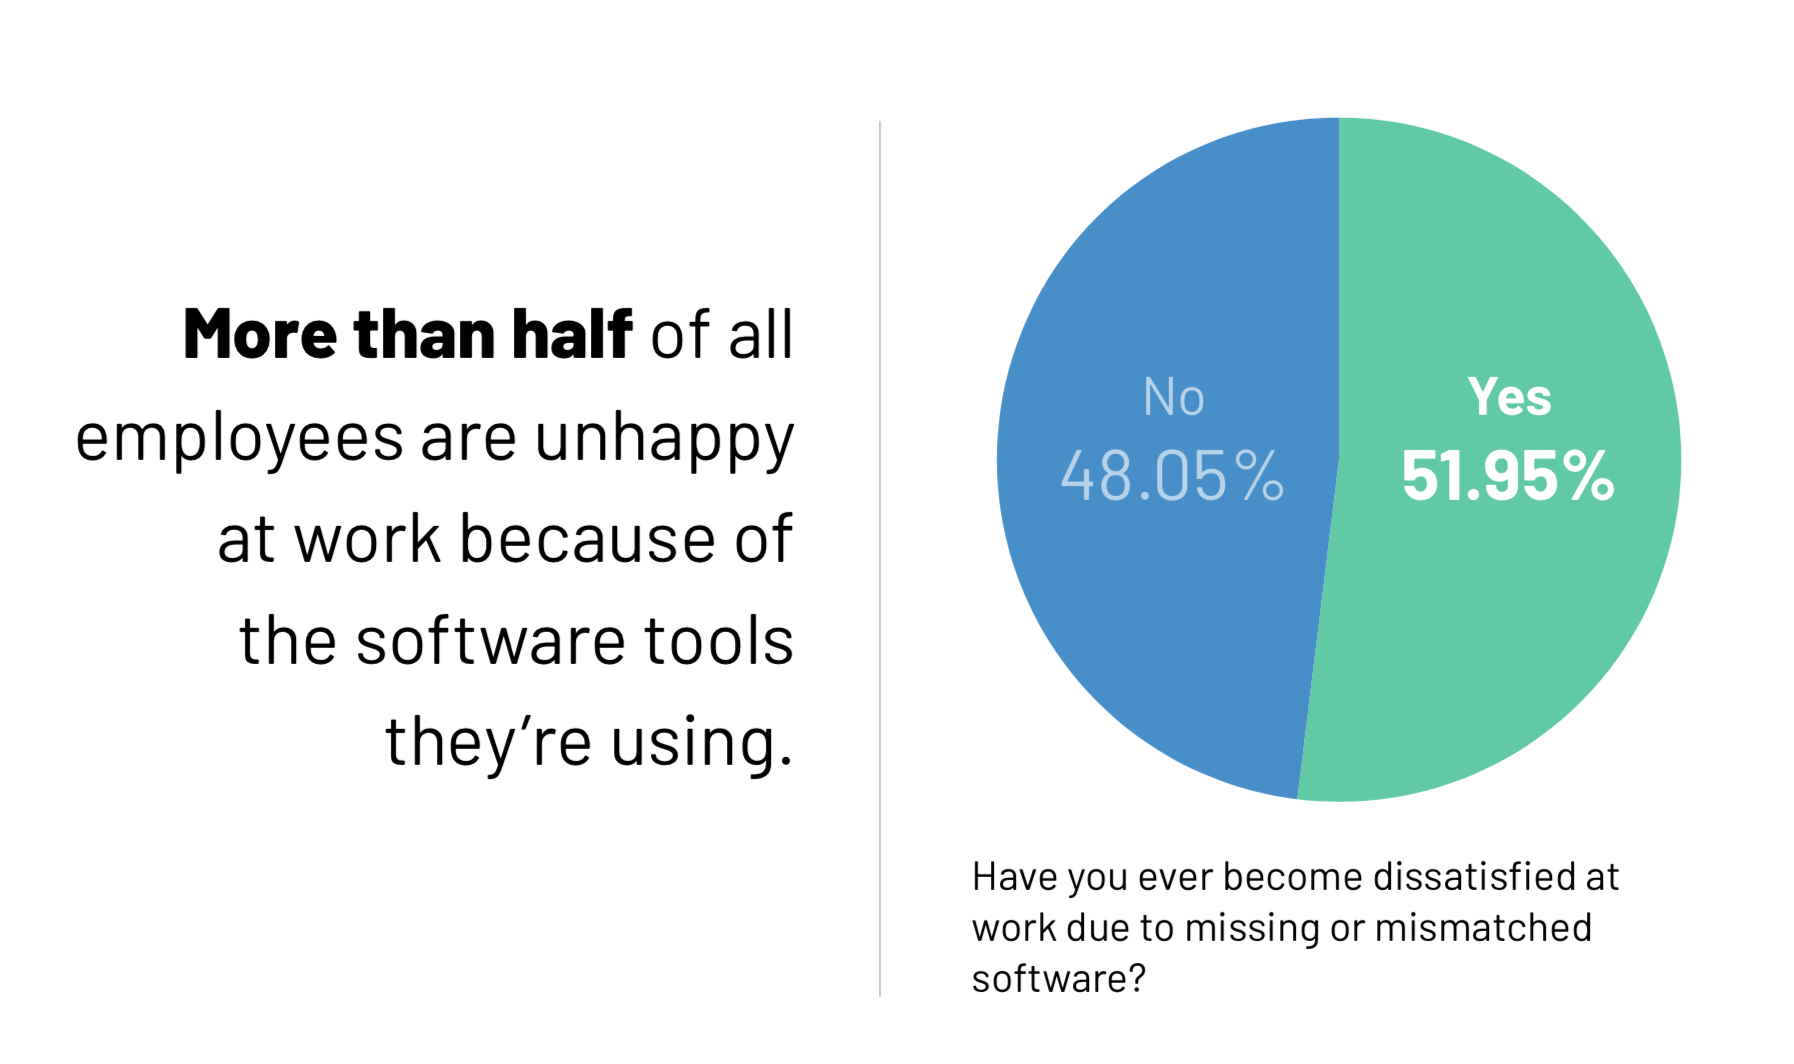 The wrong software makes employees dissatisfied